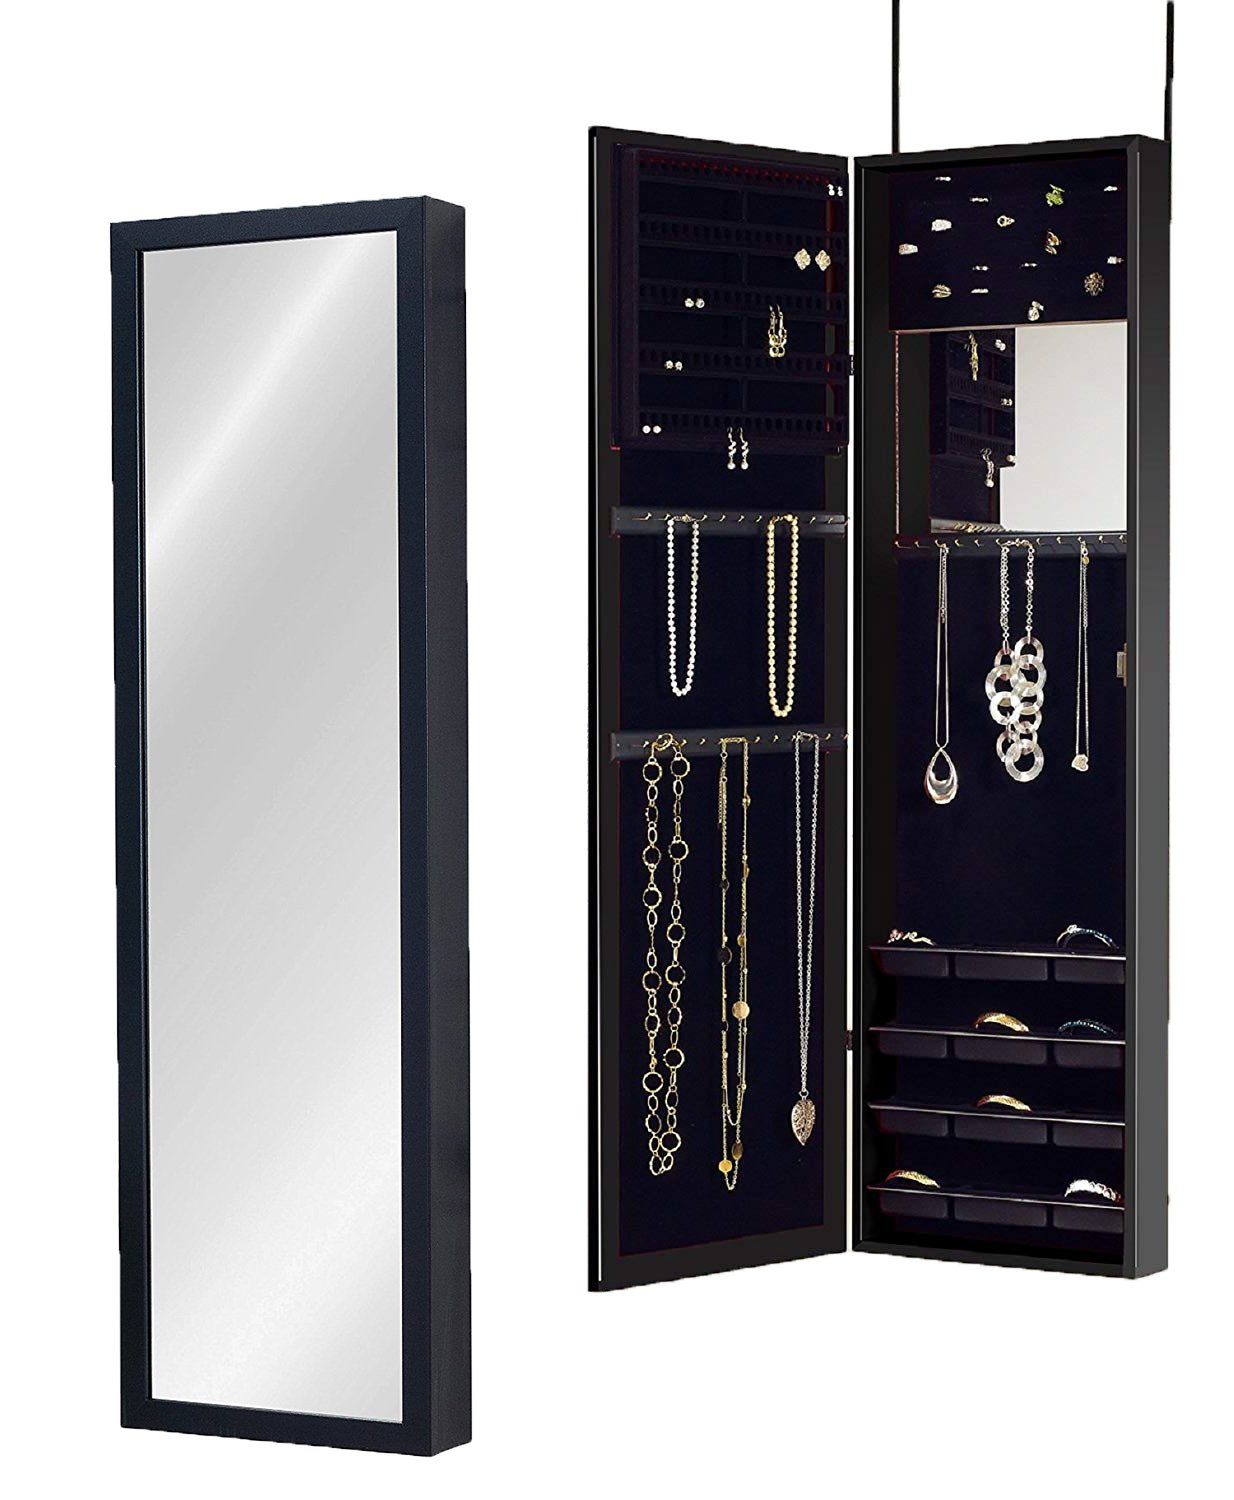 Plaza Astoria PA66BK Wall Mounted Over the Door Super Sized Jewelry Armoire Storage Cabinet, Black Mirrotek